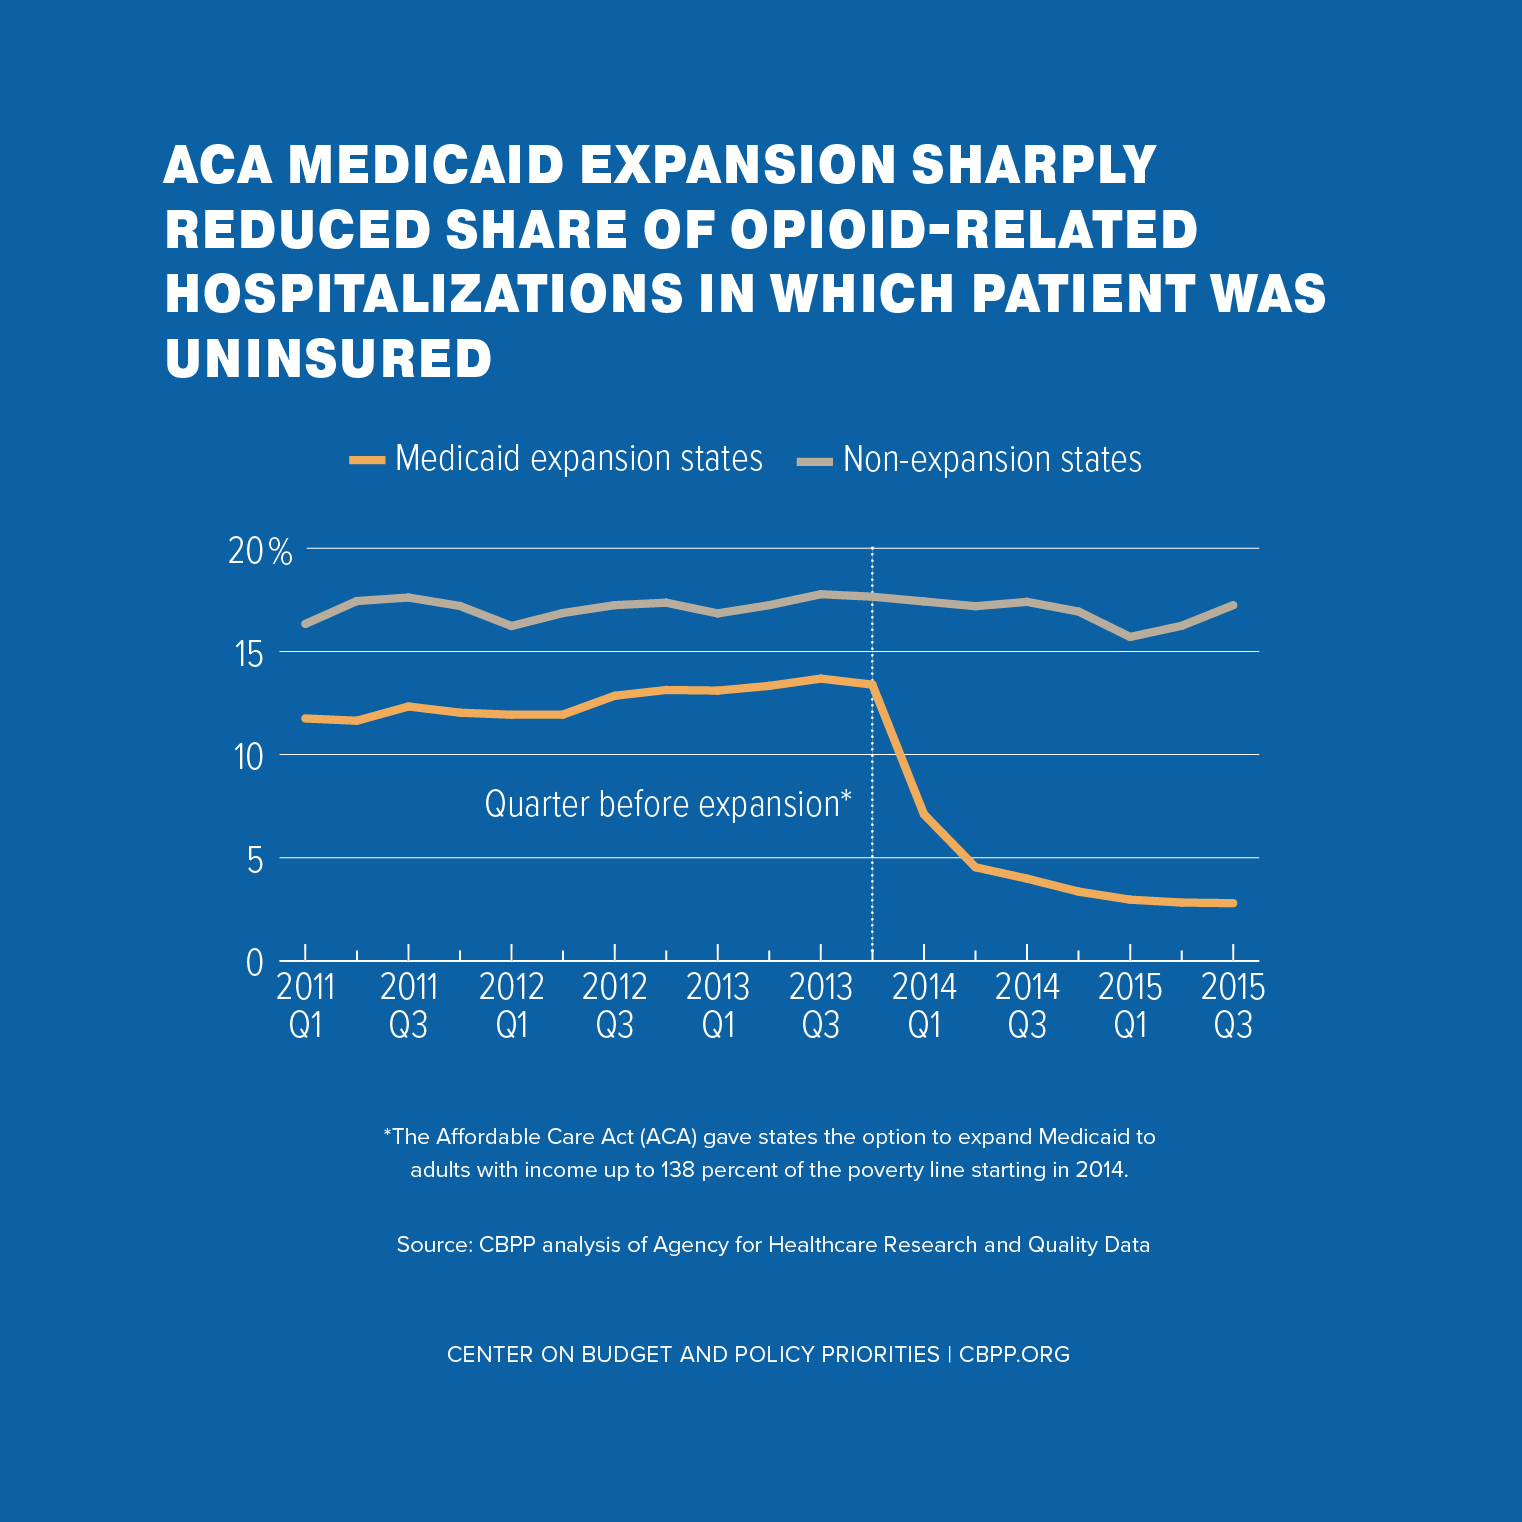 ACA Medicaid Expansion Sharply Reduced Share of Opioid-Related Hospitalizations in Which Patient Was Uninsured